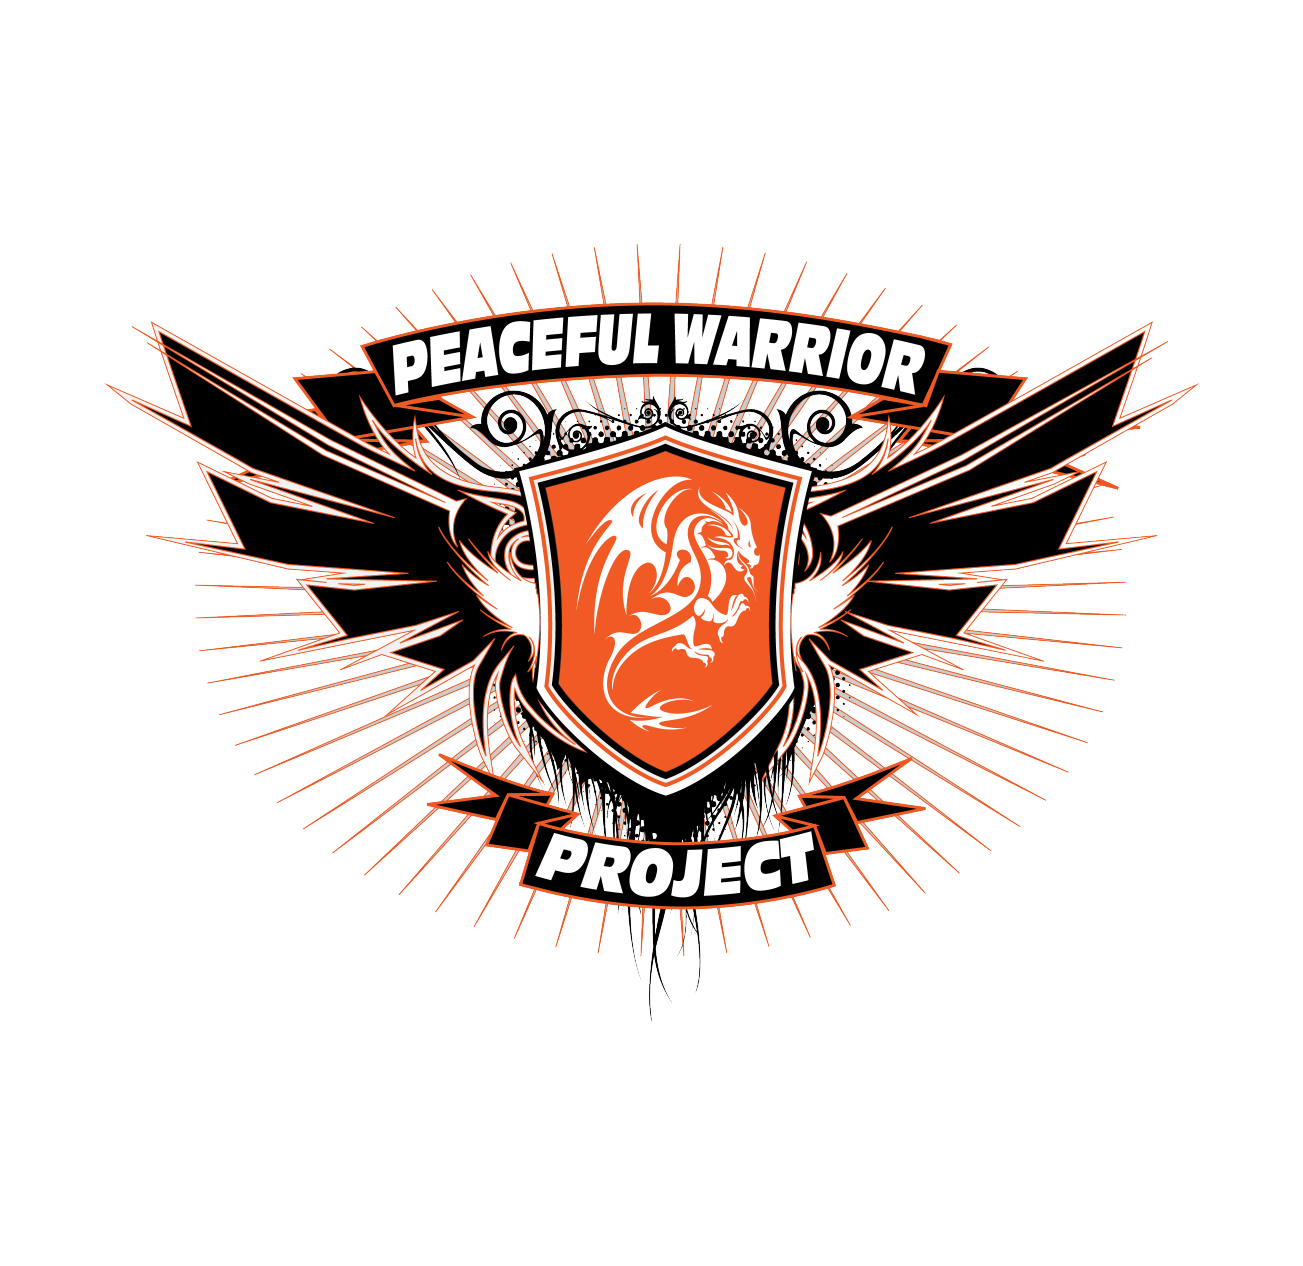 Peaceful Warrior Project